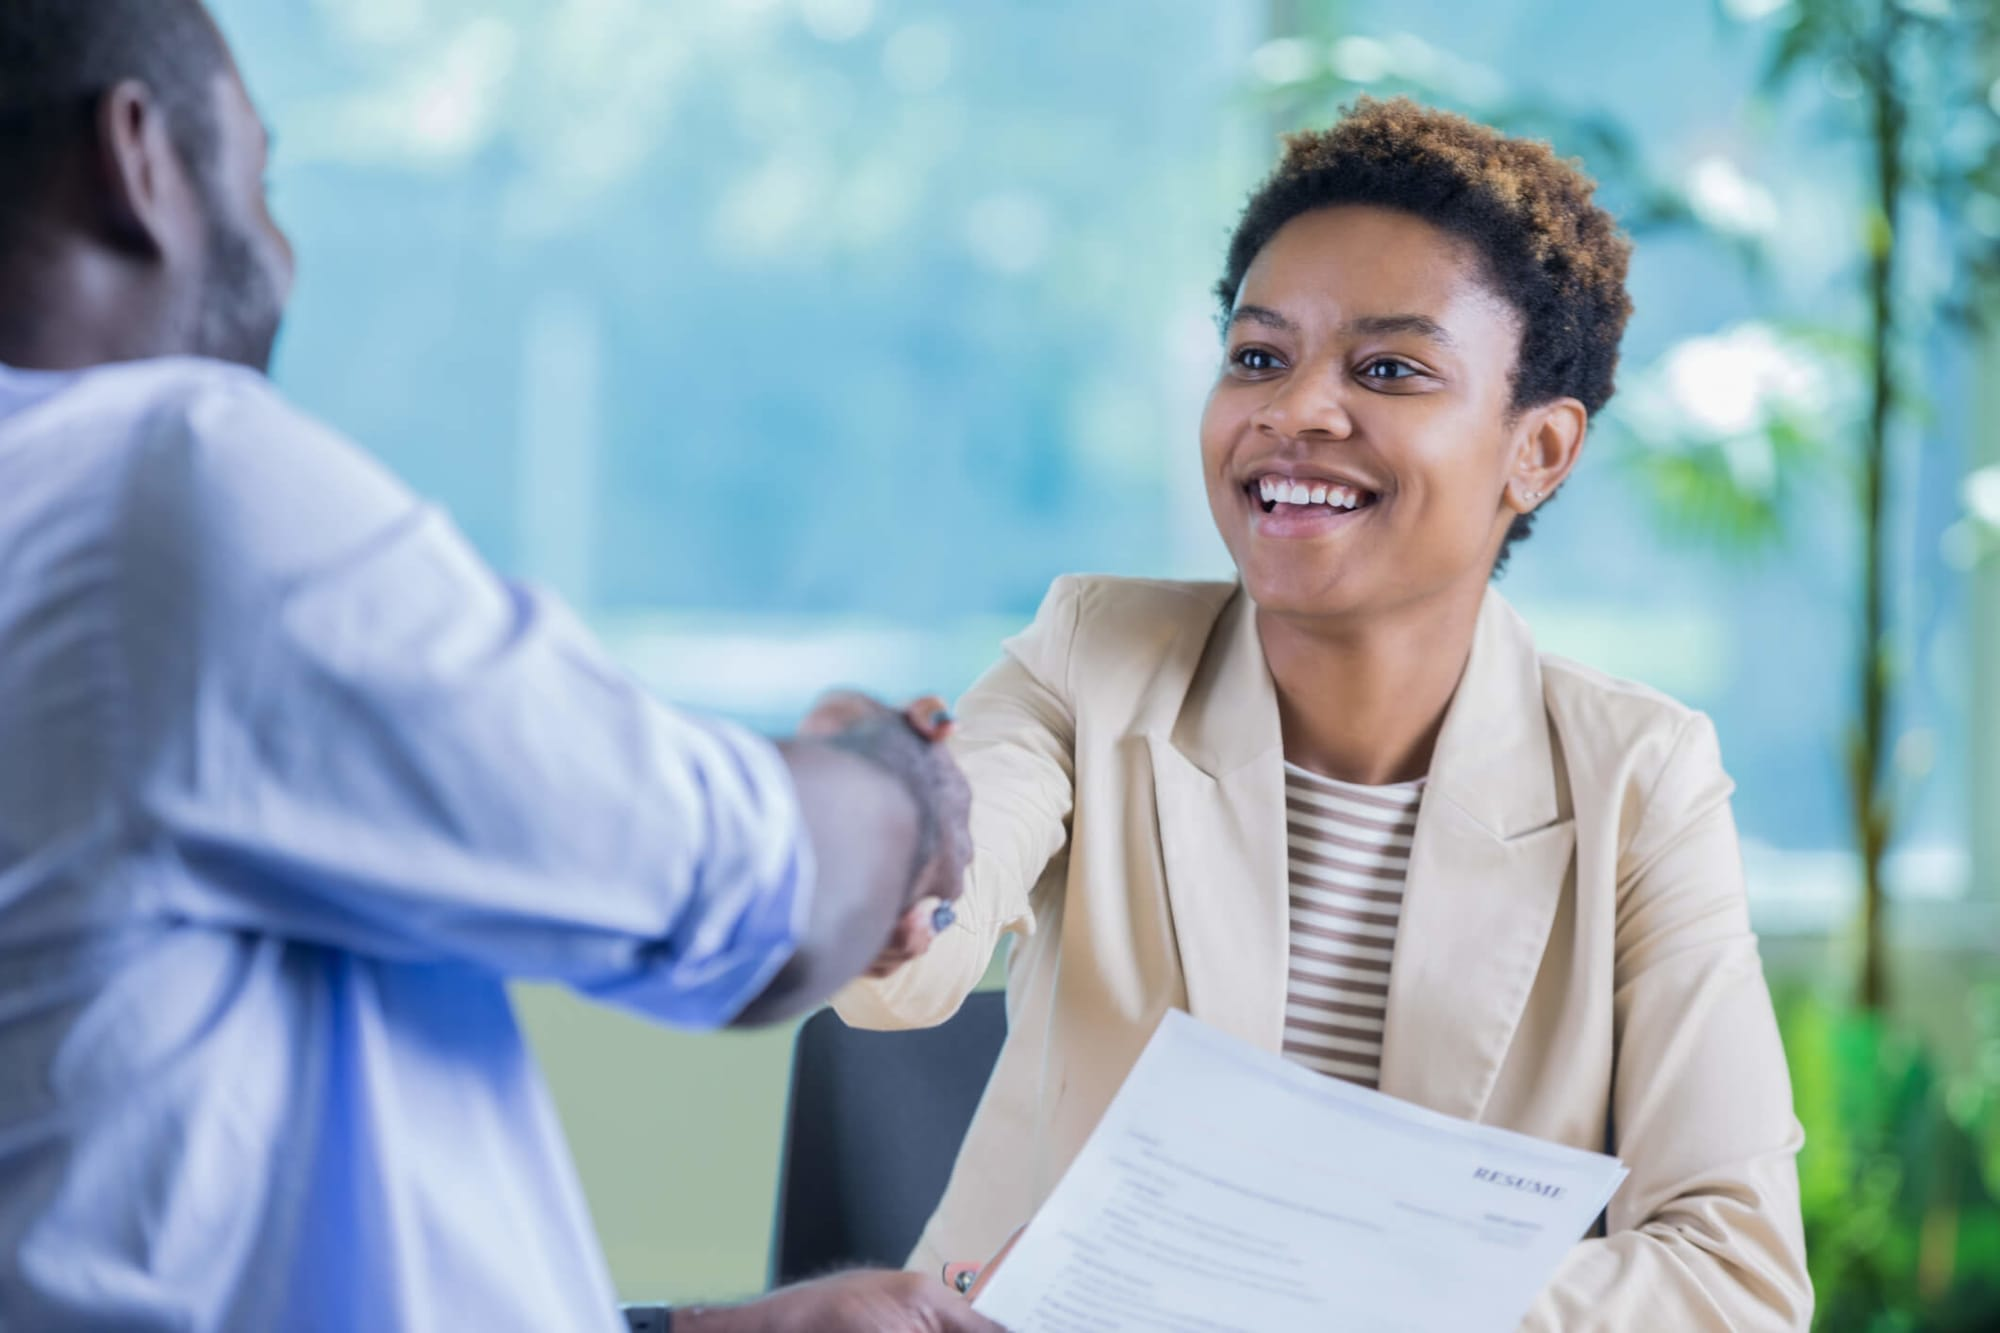 Most Common Questions to Expect in Your NP Job Interview